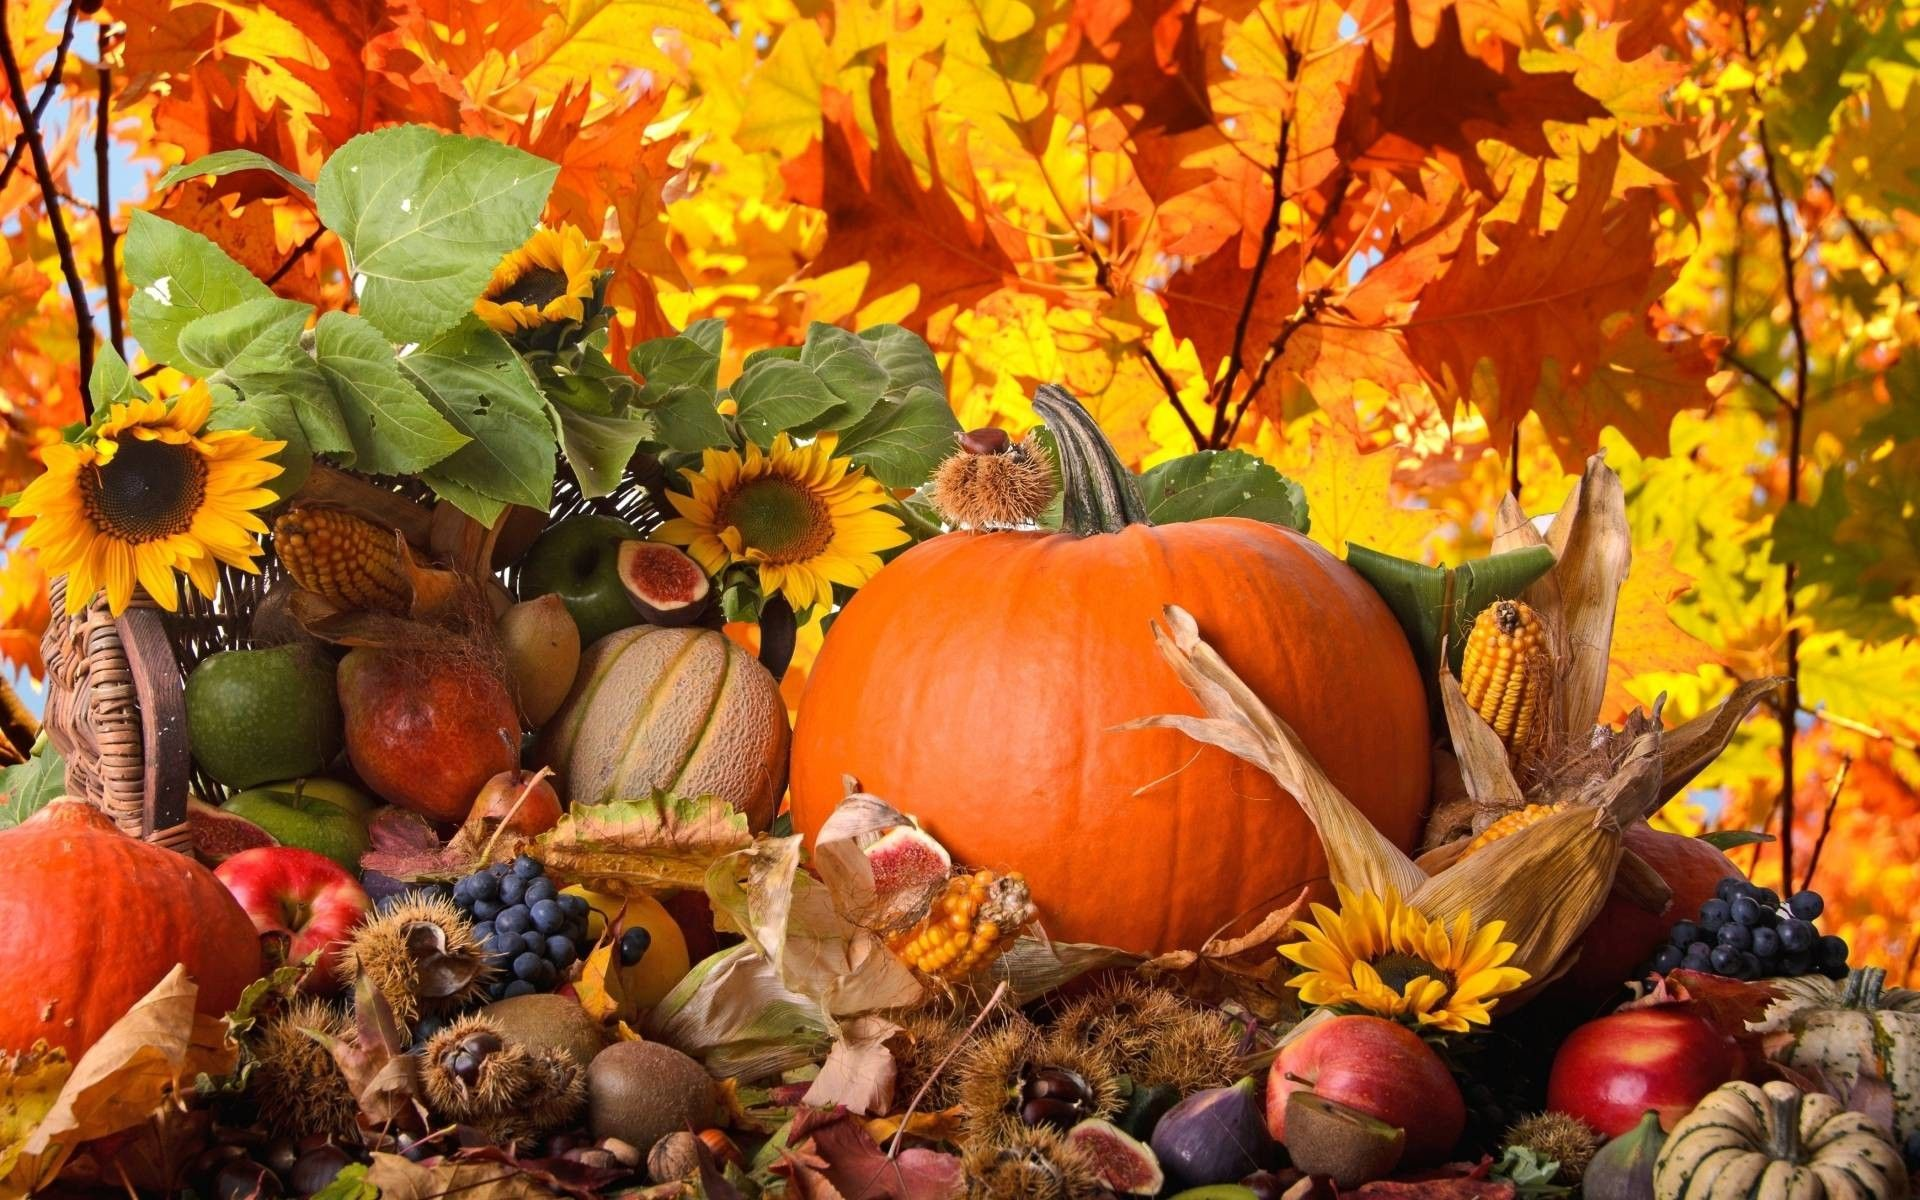 1920x1200 Cute Thanksgiving Wallpapers for Desktop (60+ images)